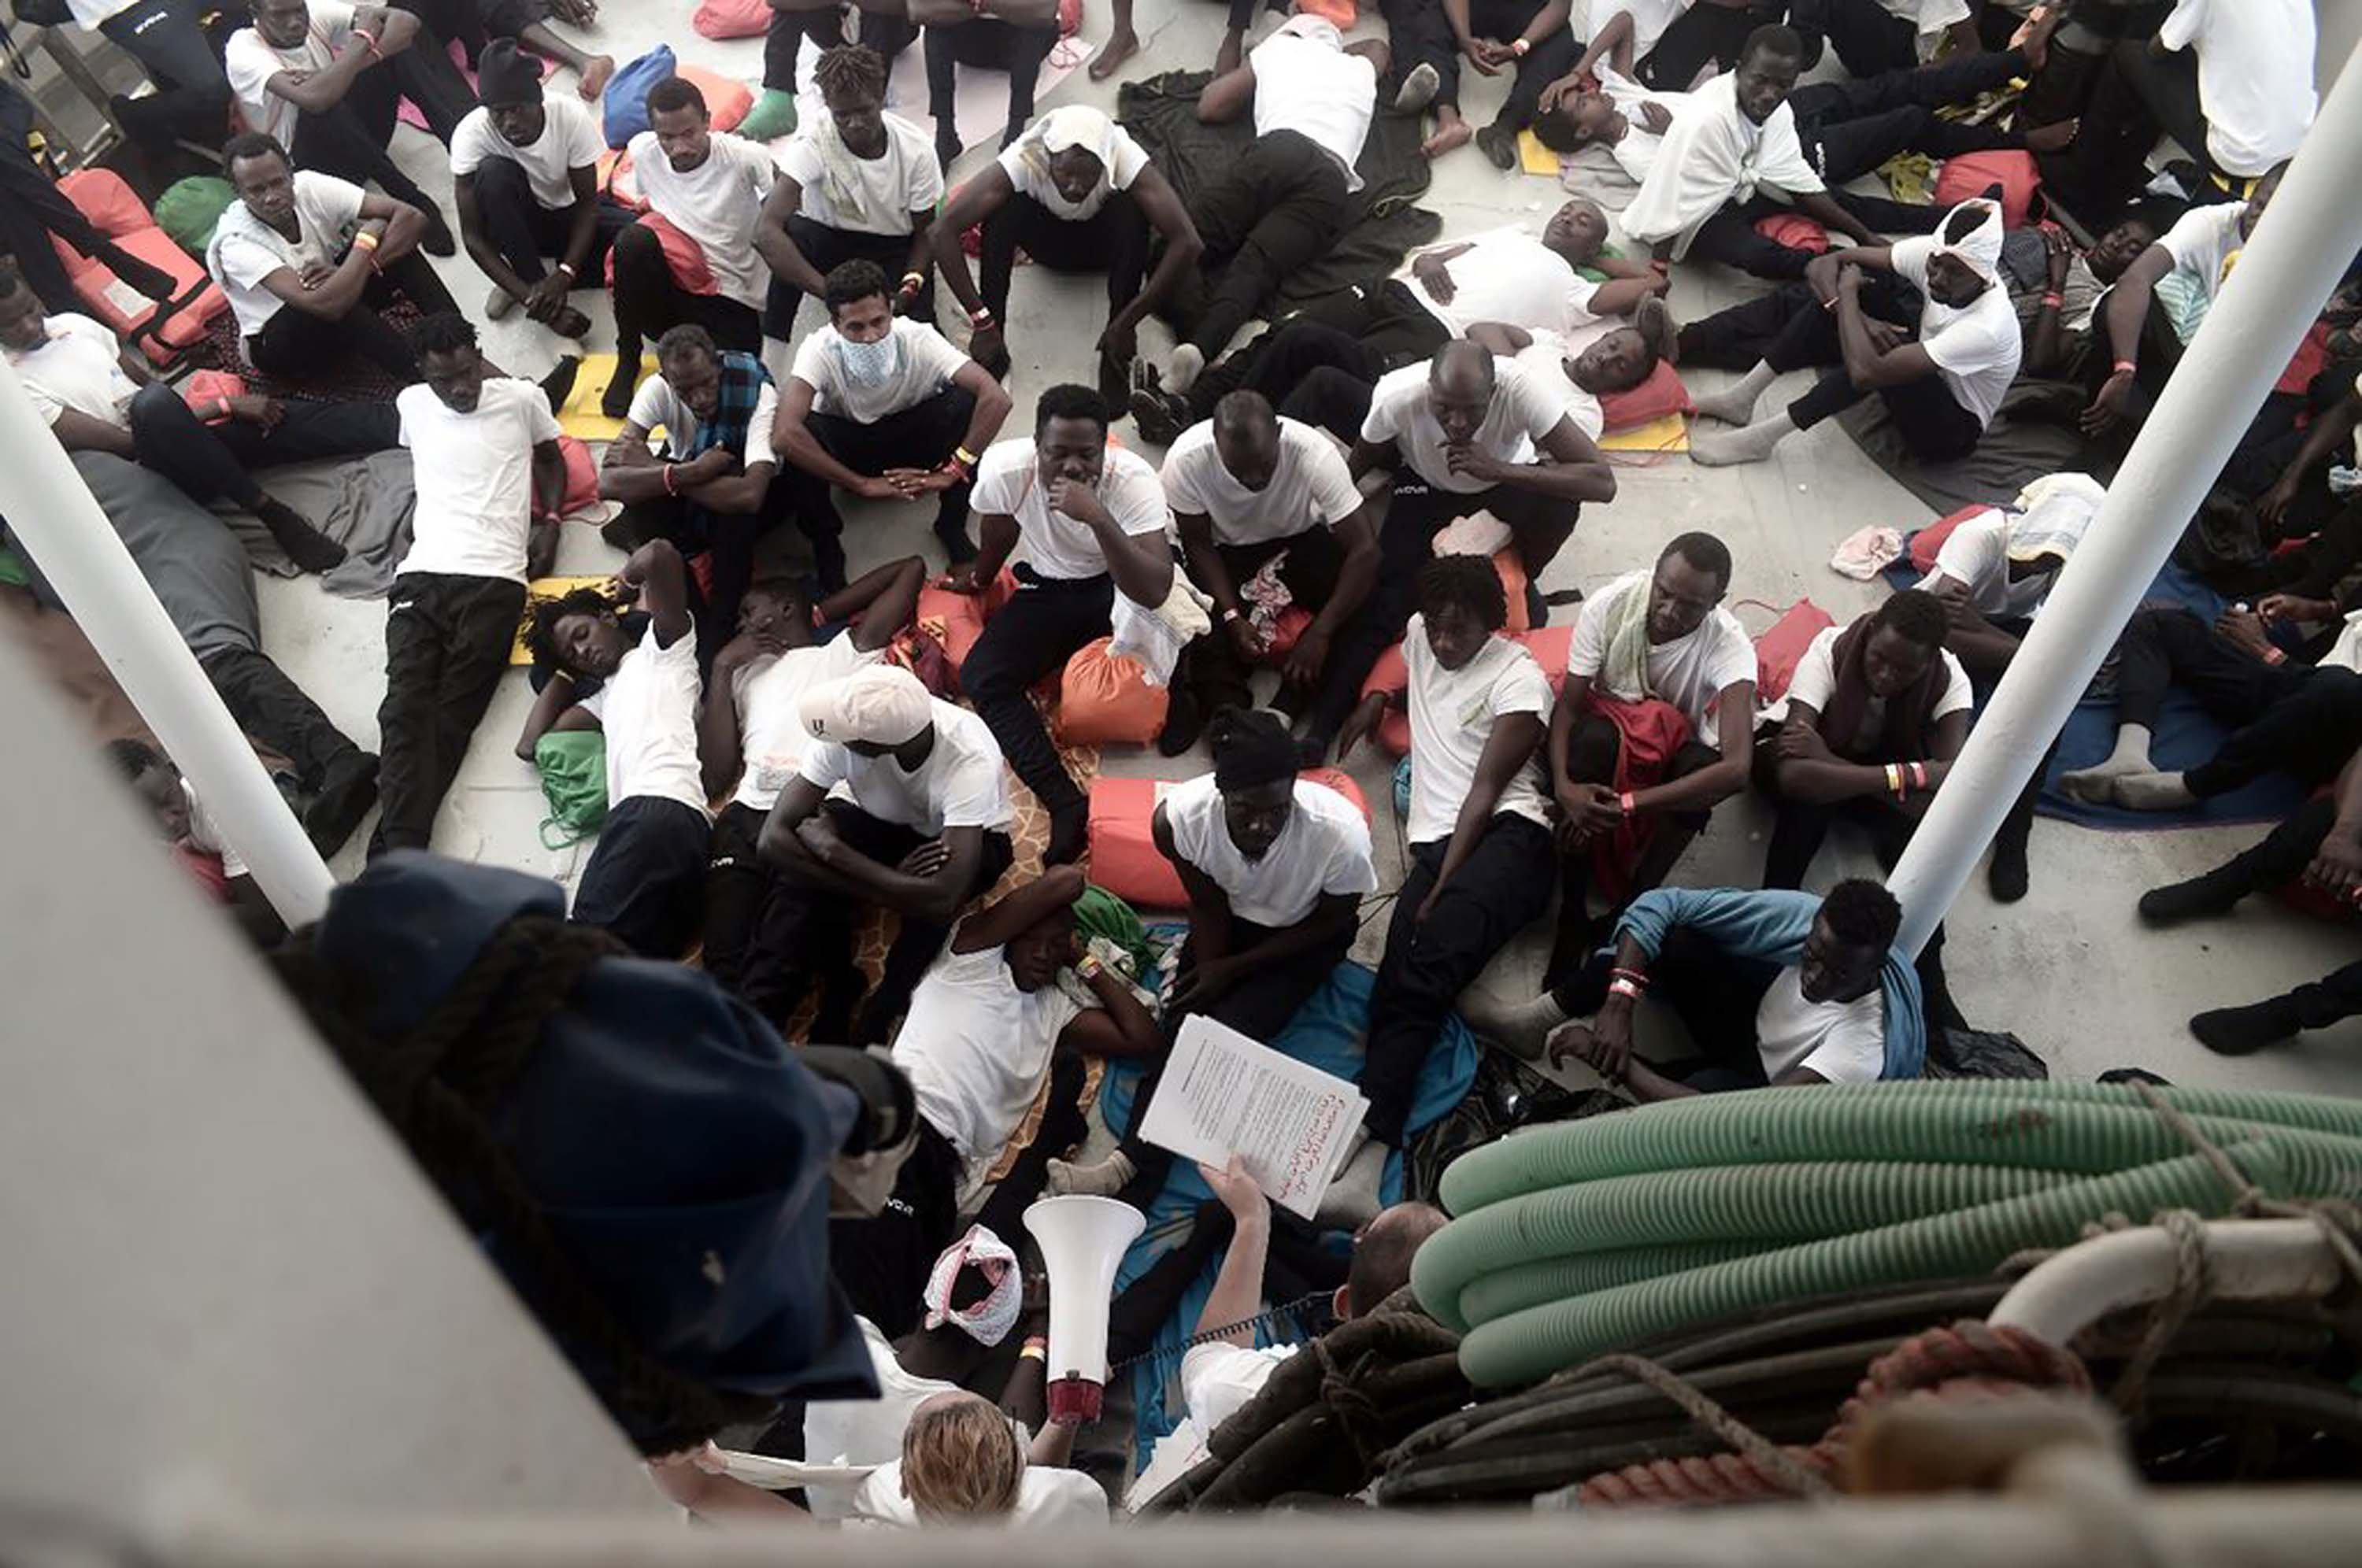 Migrants on board the stranded Aquarius rescue ship.